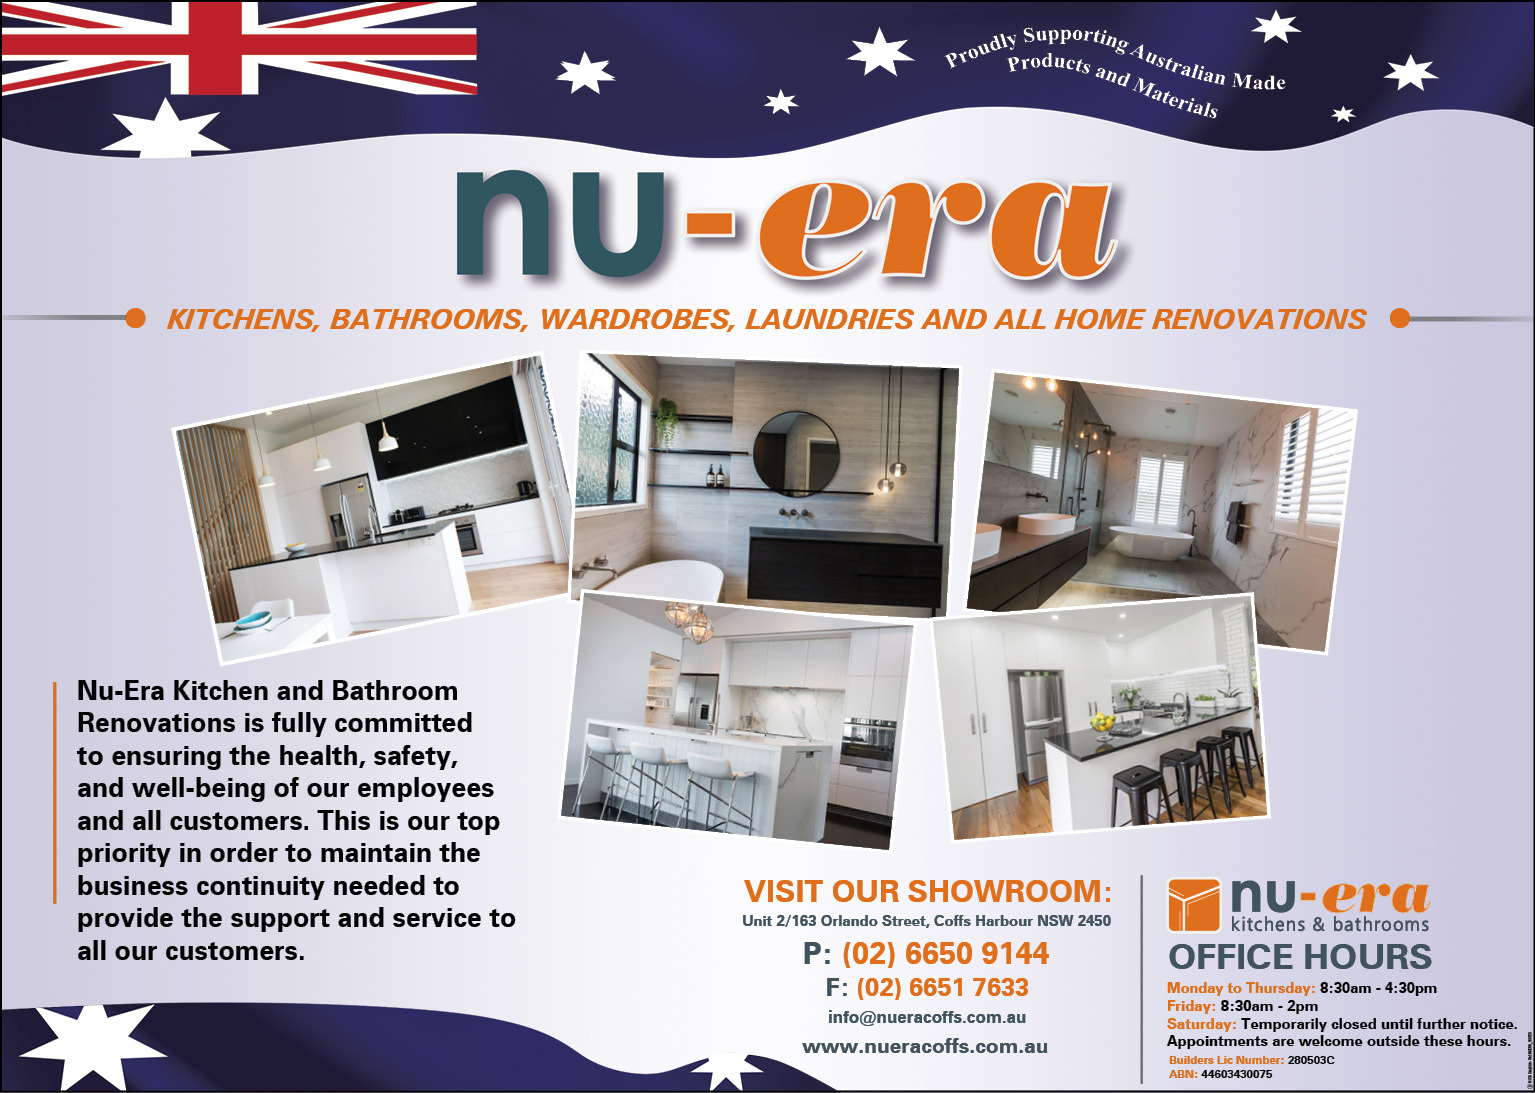 NuEra Kitchen and Bathroom Renovations PTY LTD